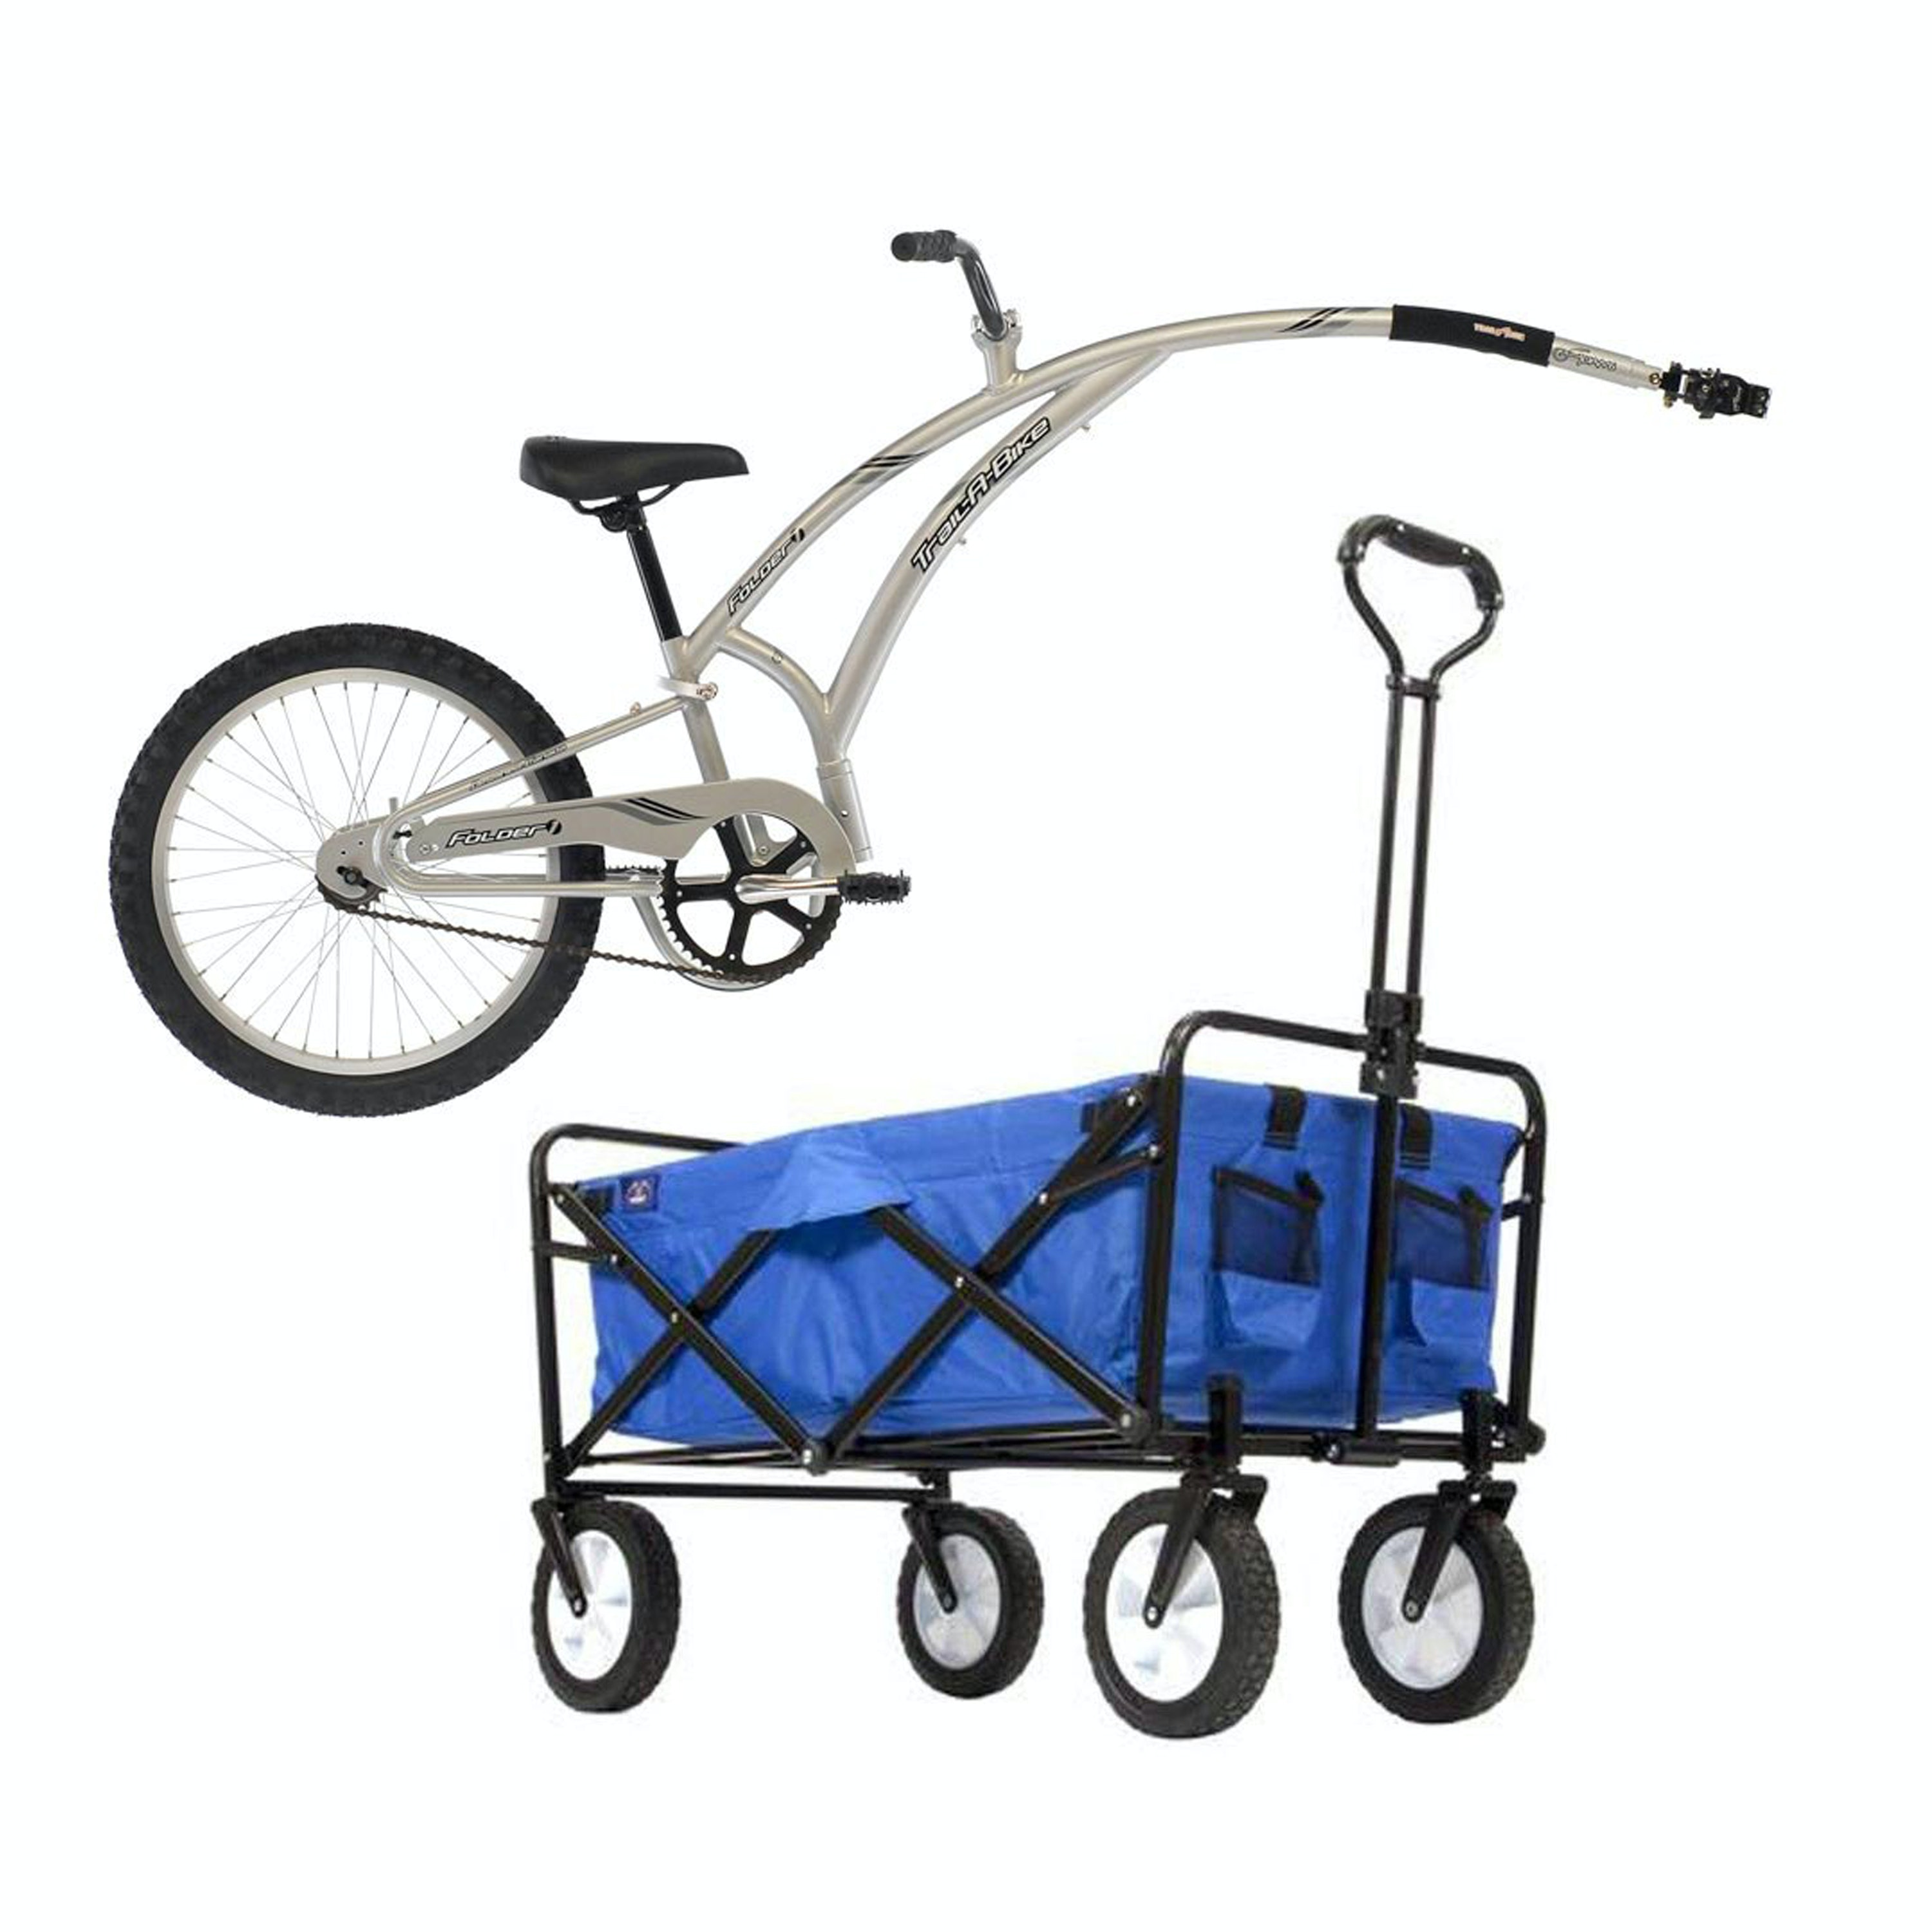 Adams Trail Bike and Collapsible MacWagon, New in Original Boxes